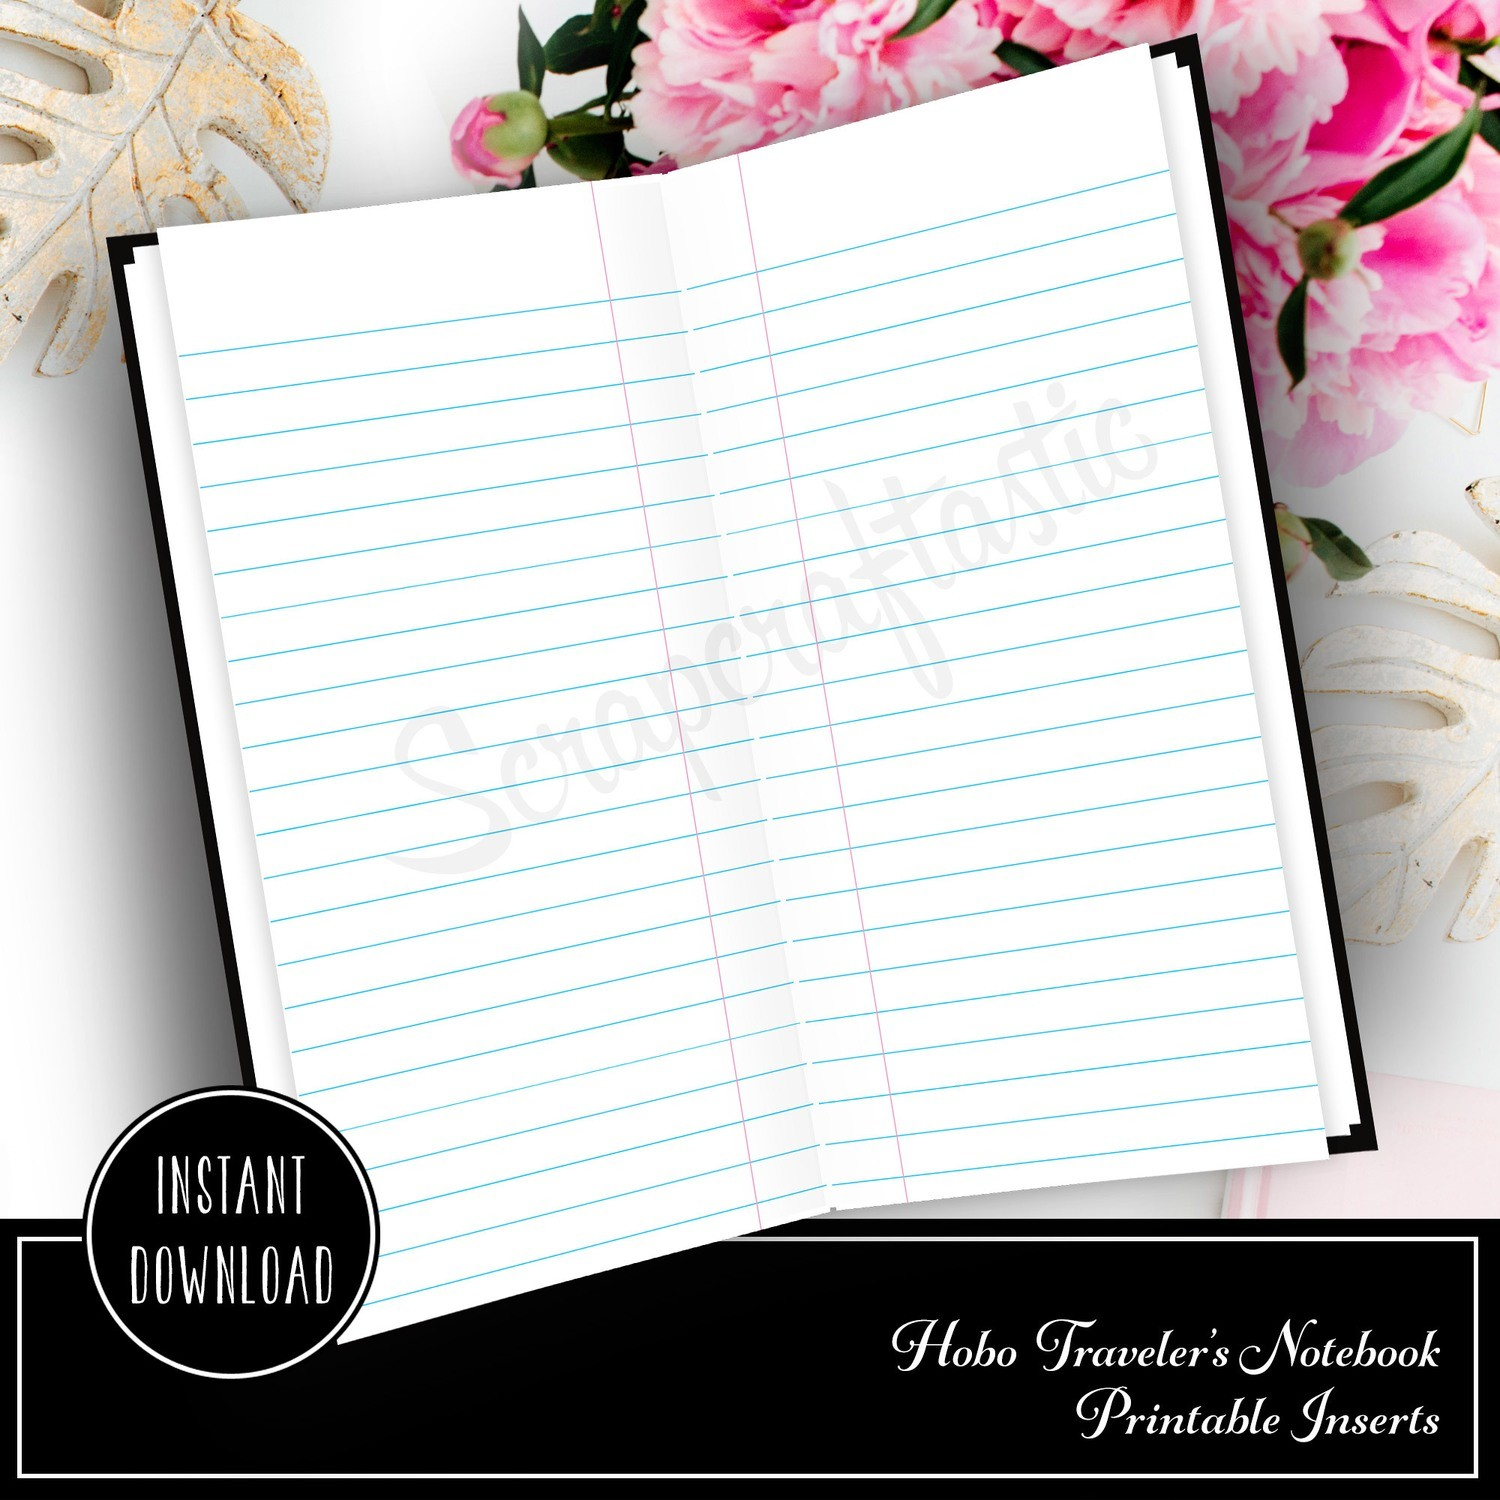 It is a graphic of Notebook Paper Printable pertaining to colorful